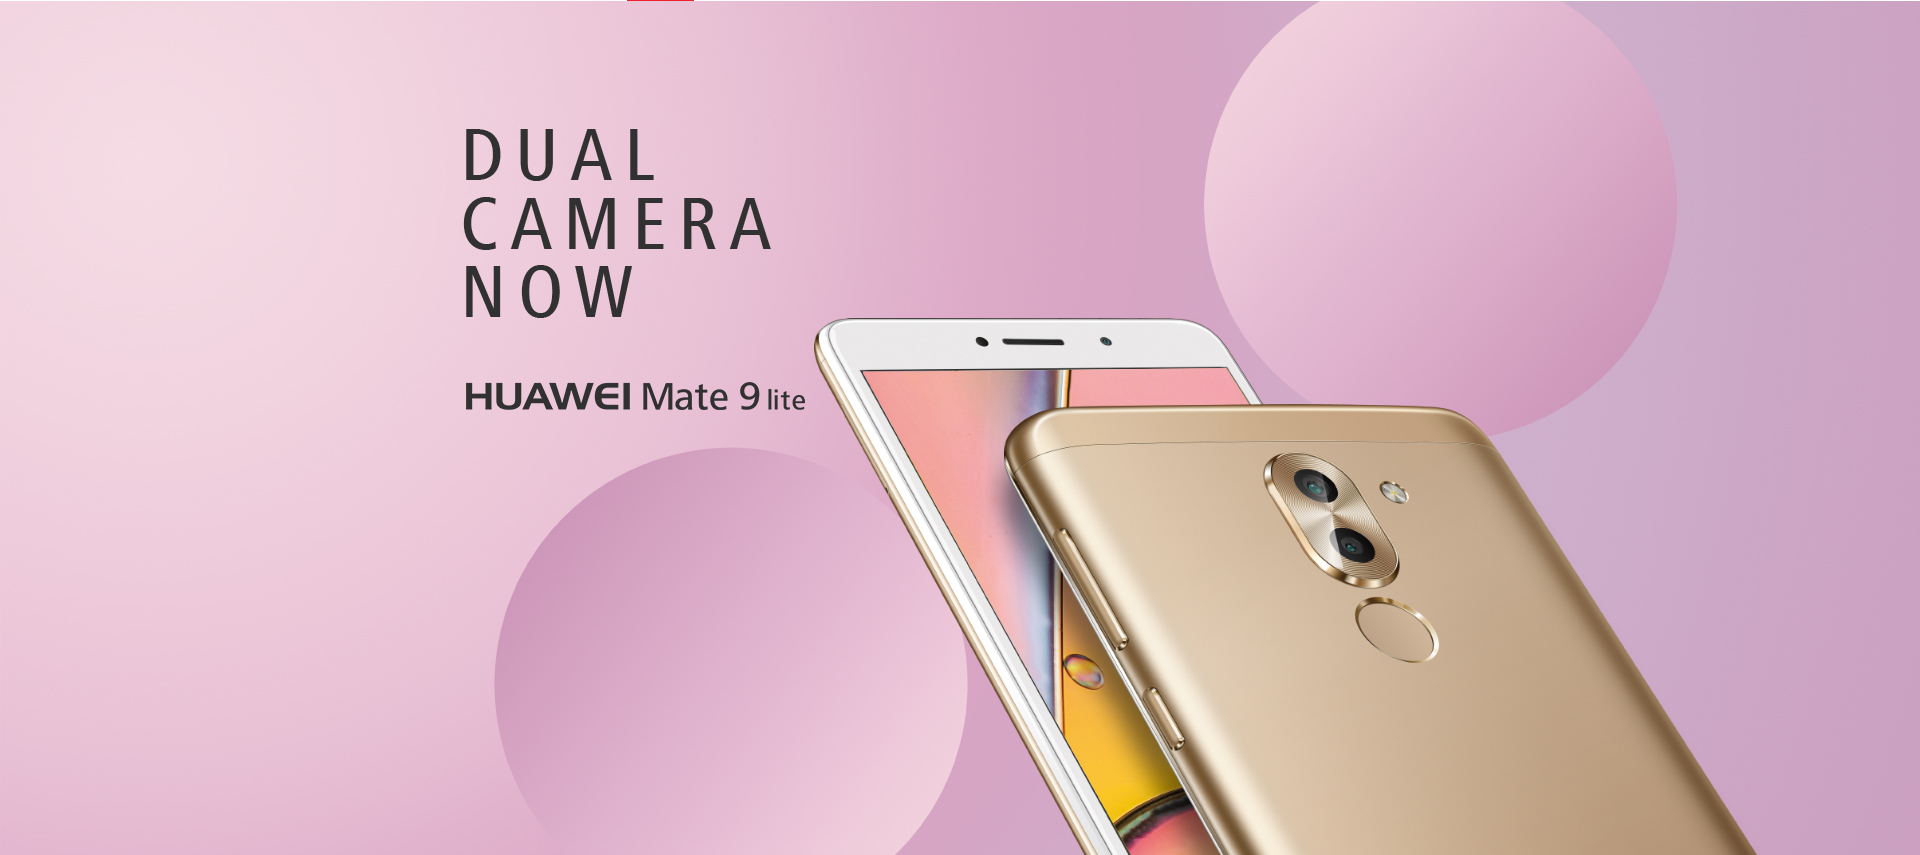 Huawei Mate 9 Lite launched with 5.5inch Display, Dual Rear Camera, and 4GB RAM